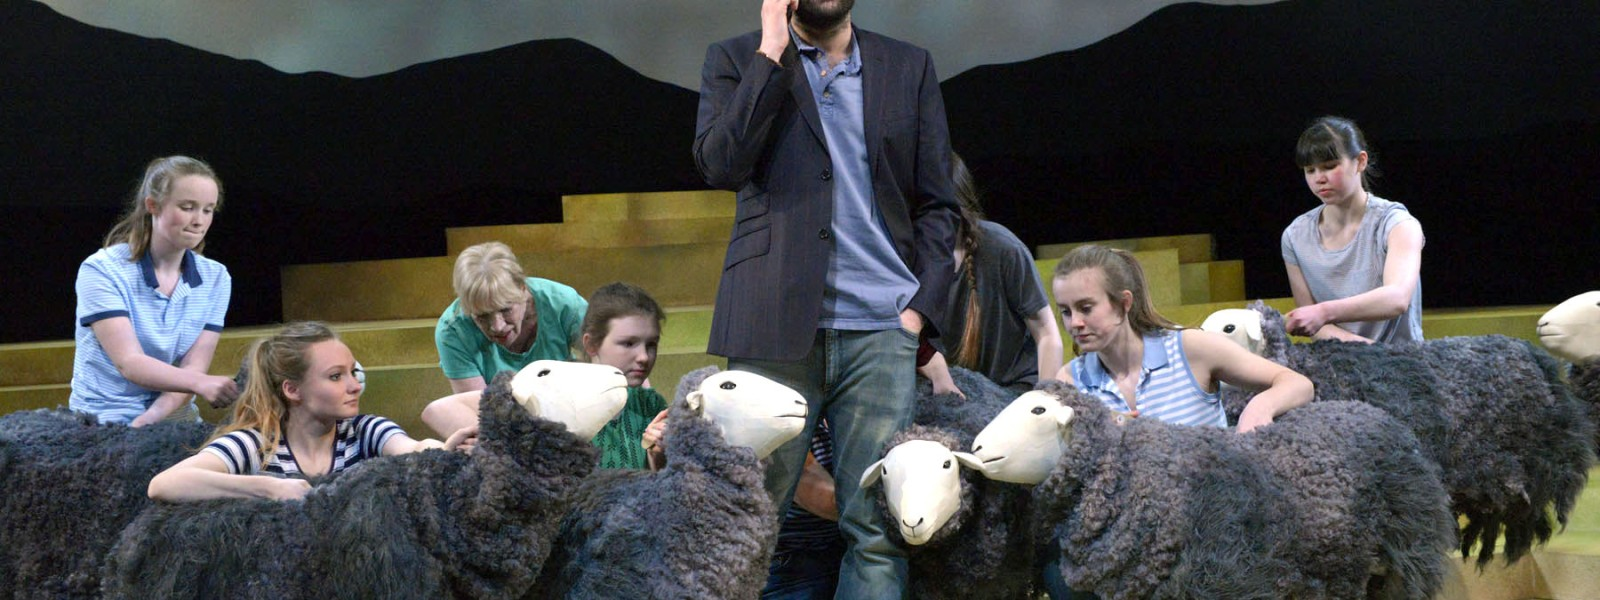 ~ Herdwick Flock operated by community cast, Kieran Hill (James); photo by Keith Pattison ~